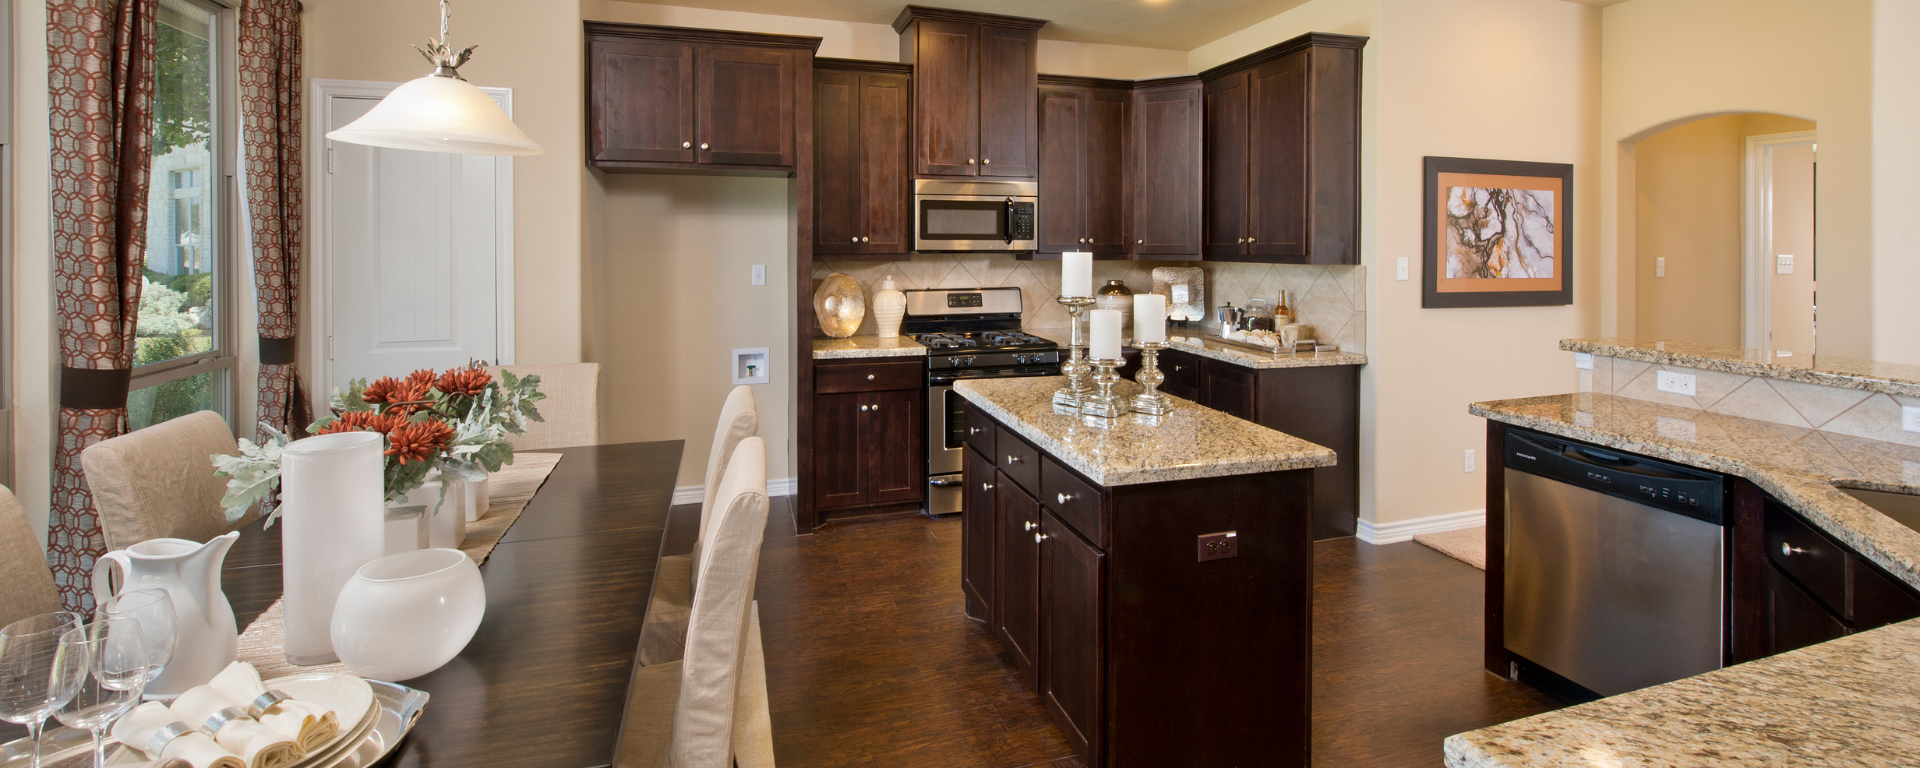 Custom Home Design Center in {{ dc.name }}, {{ dc.state }} from Tilson Homes